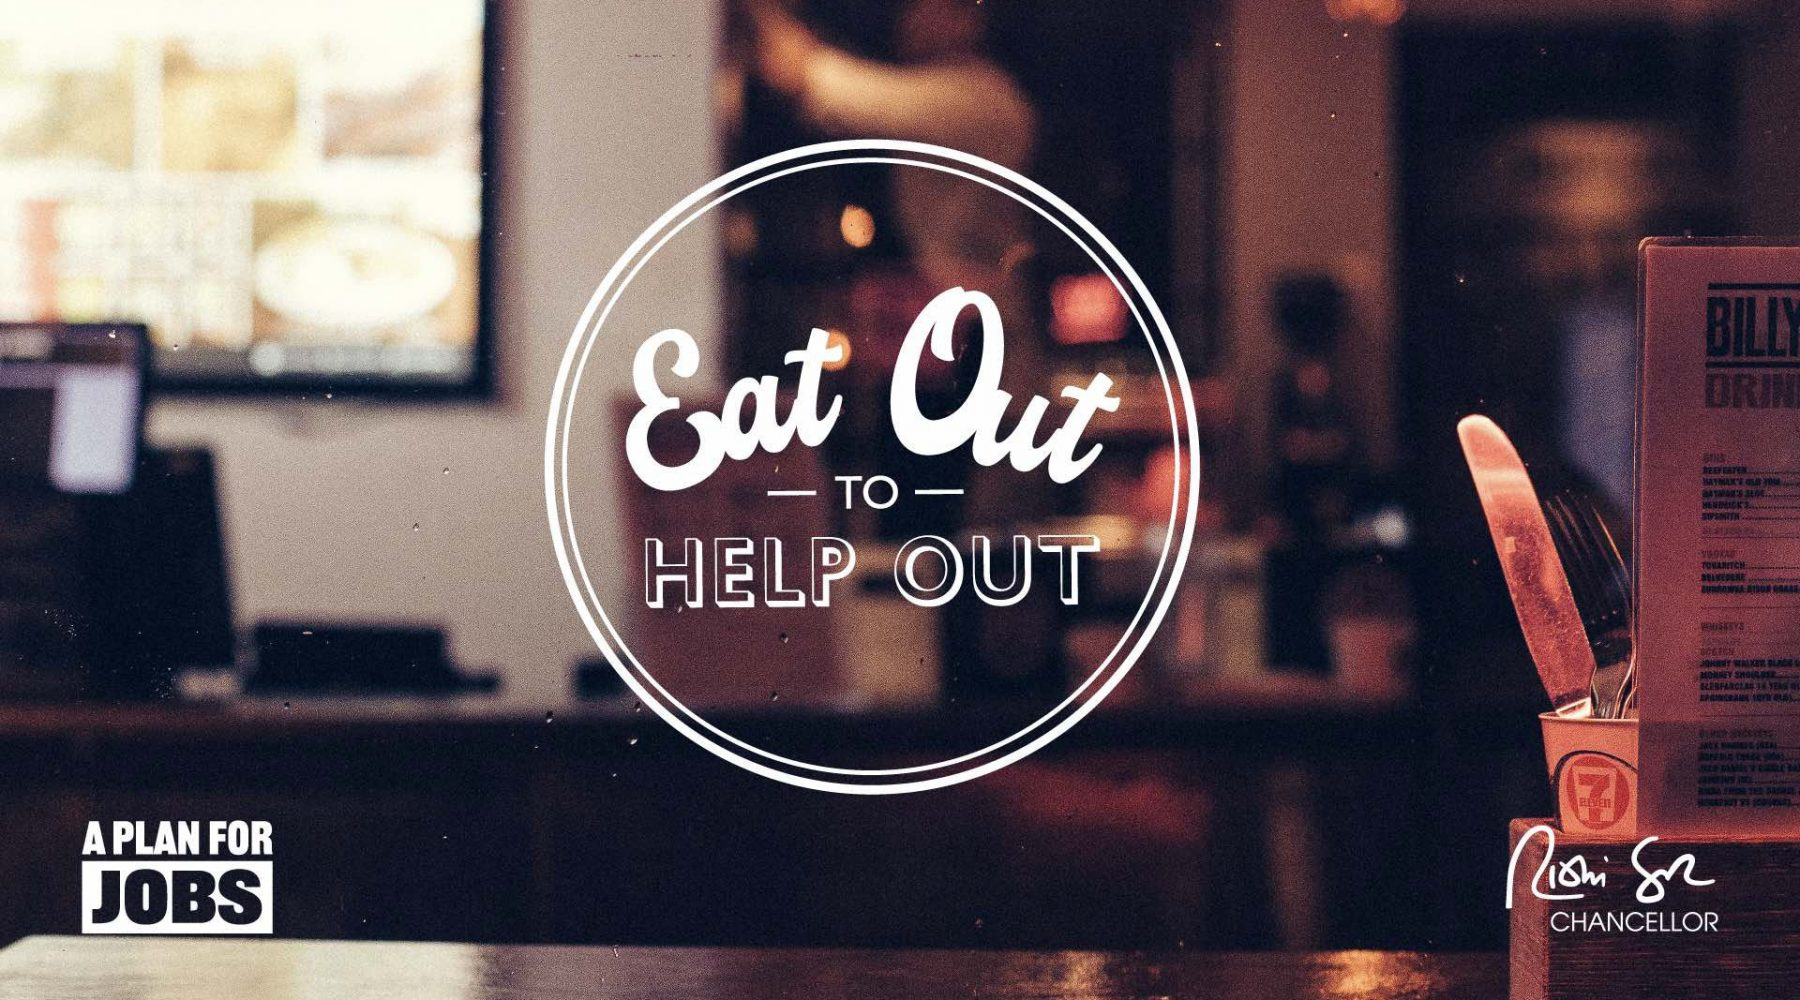 Did 'Eat out to Help Out' really 'help…